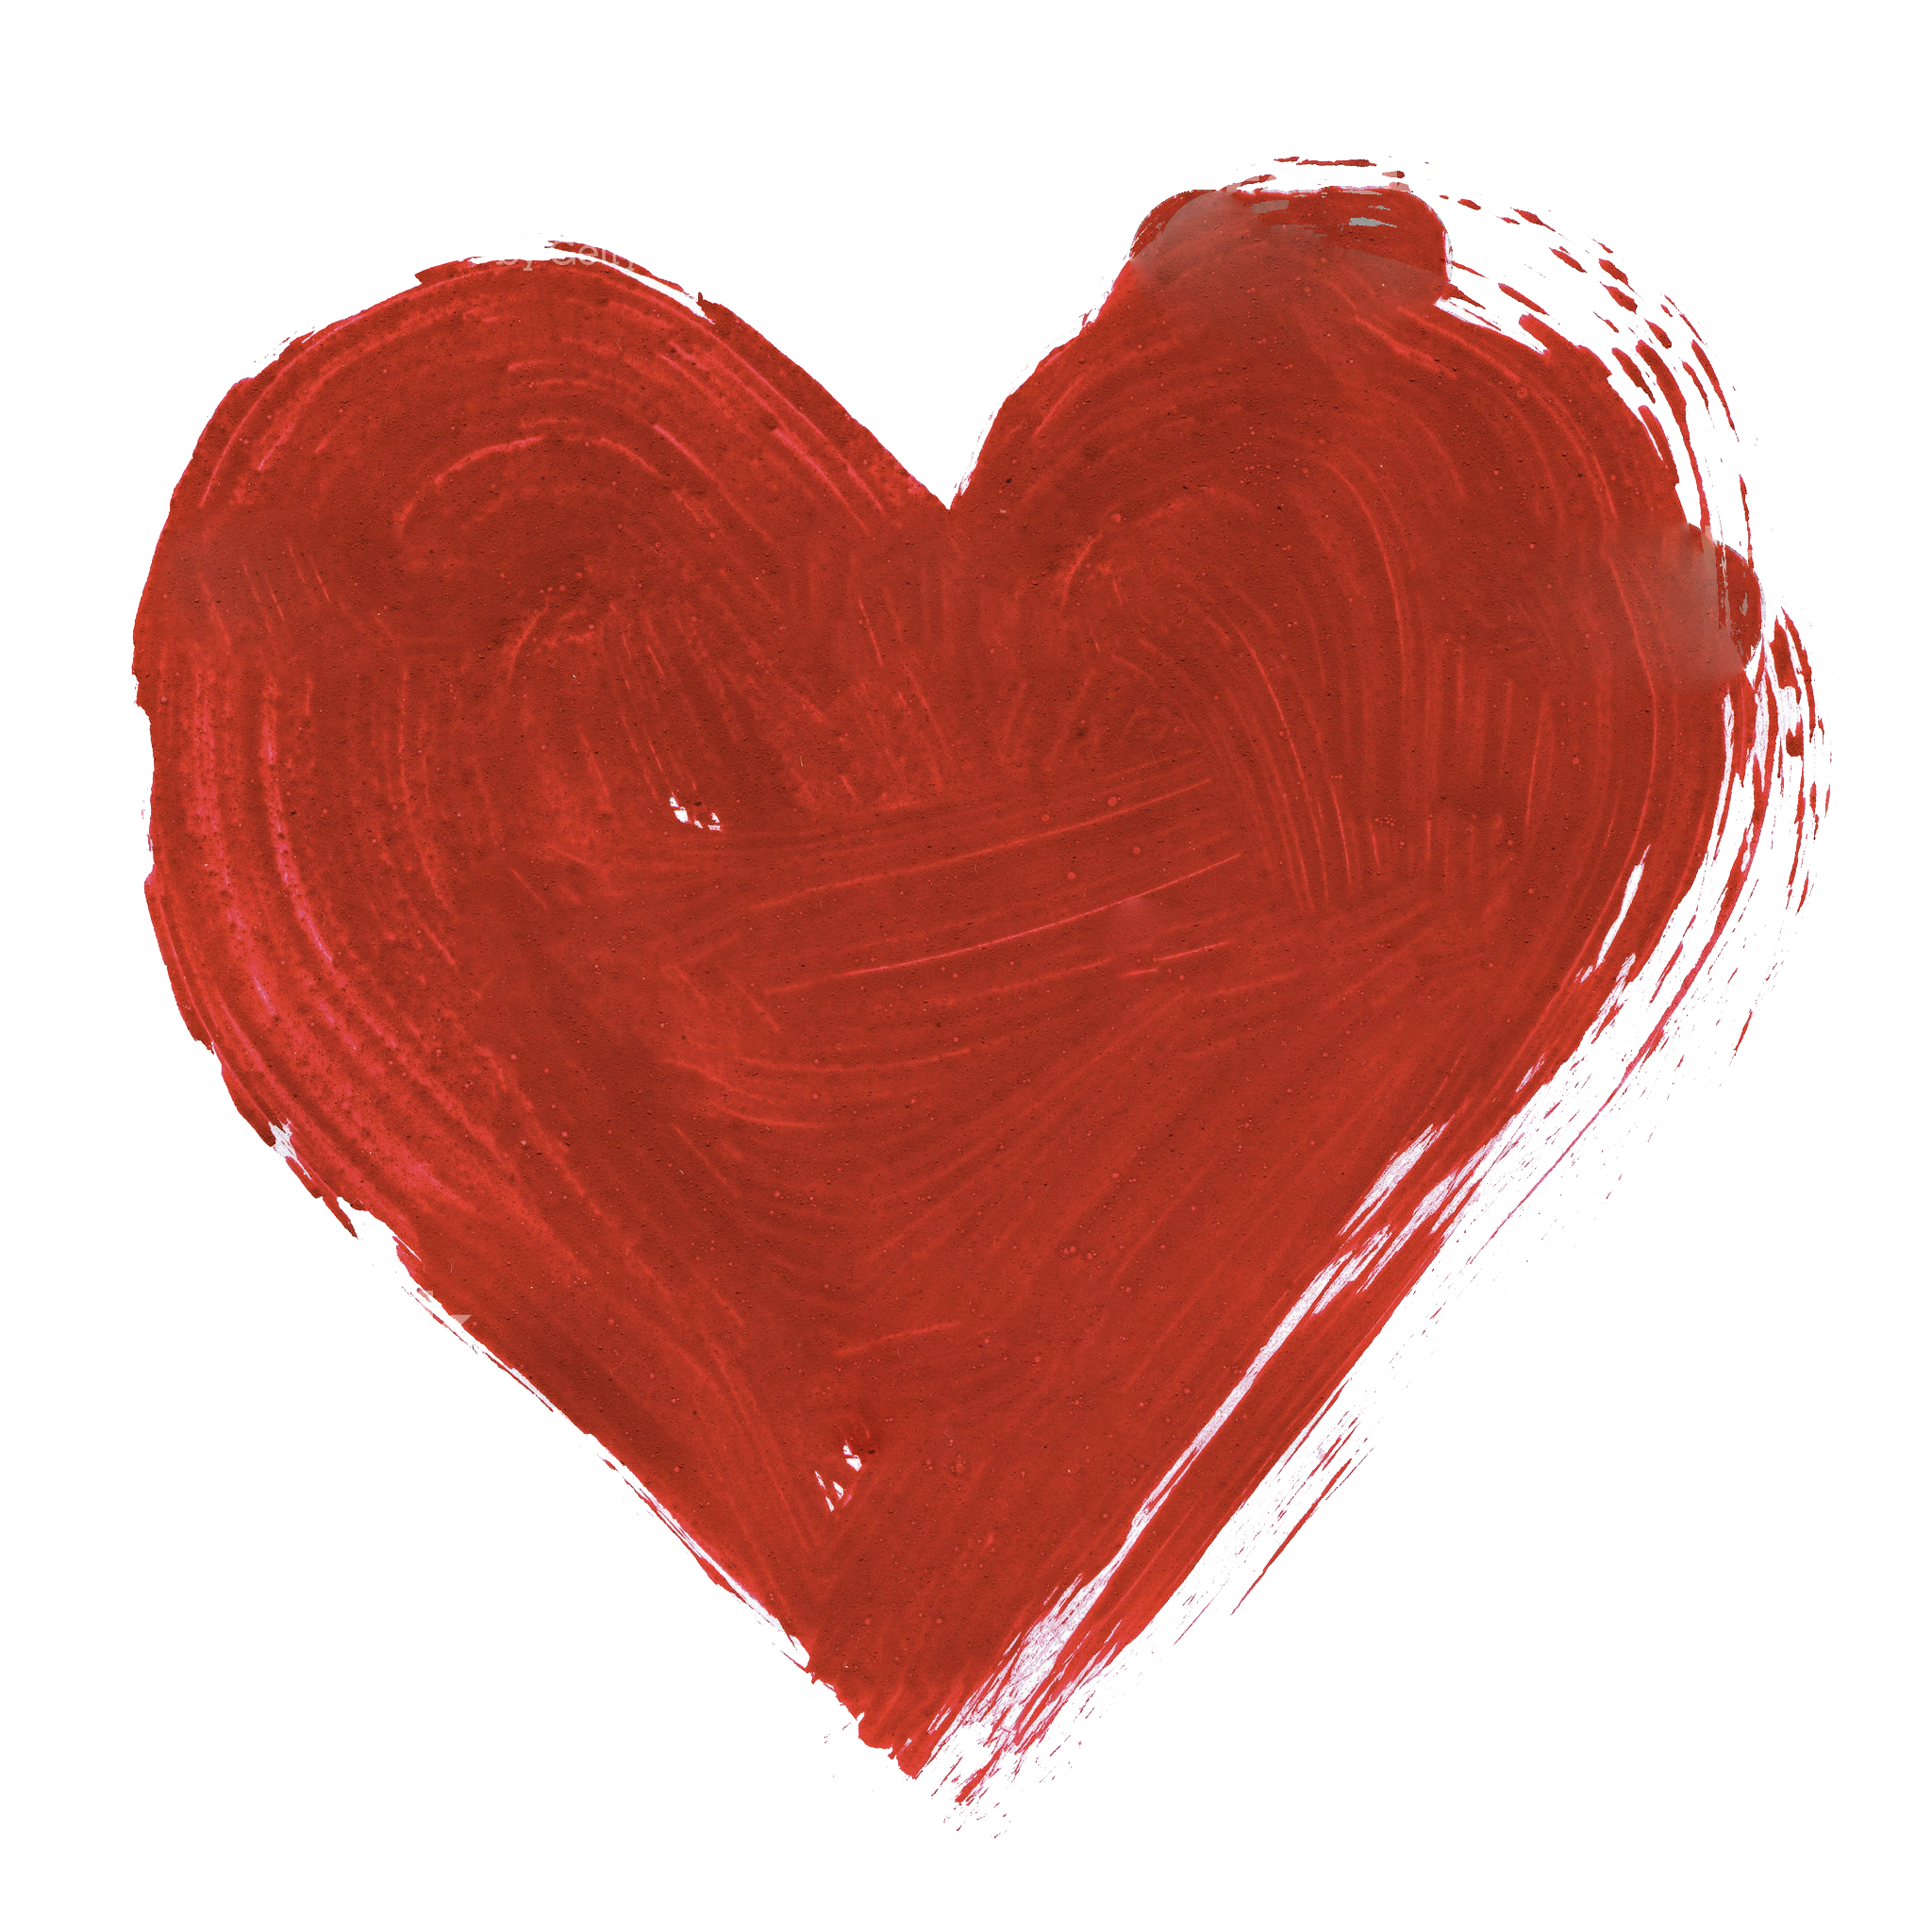 Water color heart png. Red watercolor image peoplepng